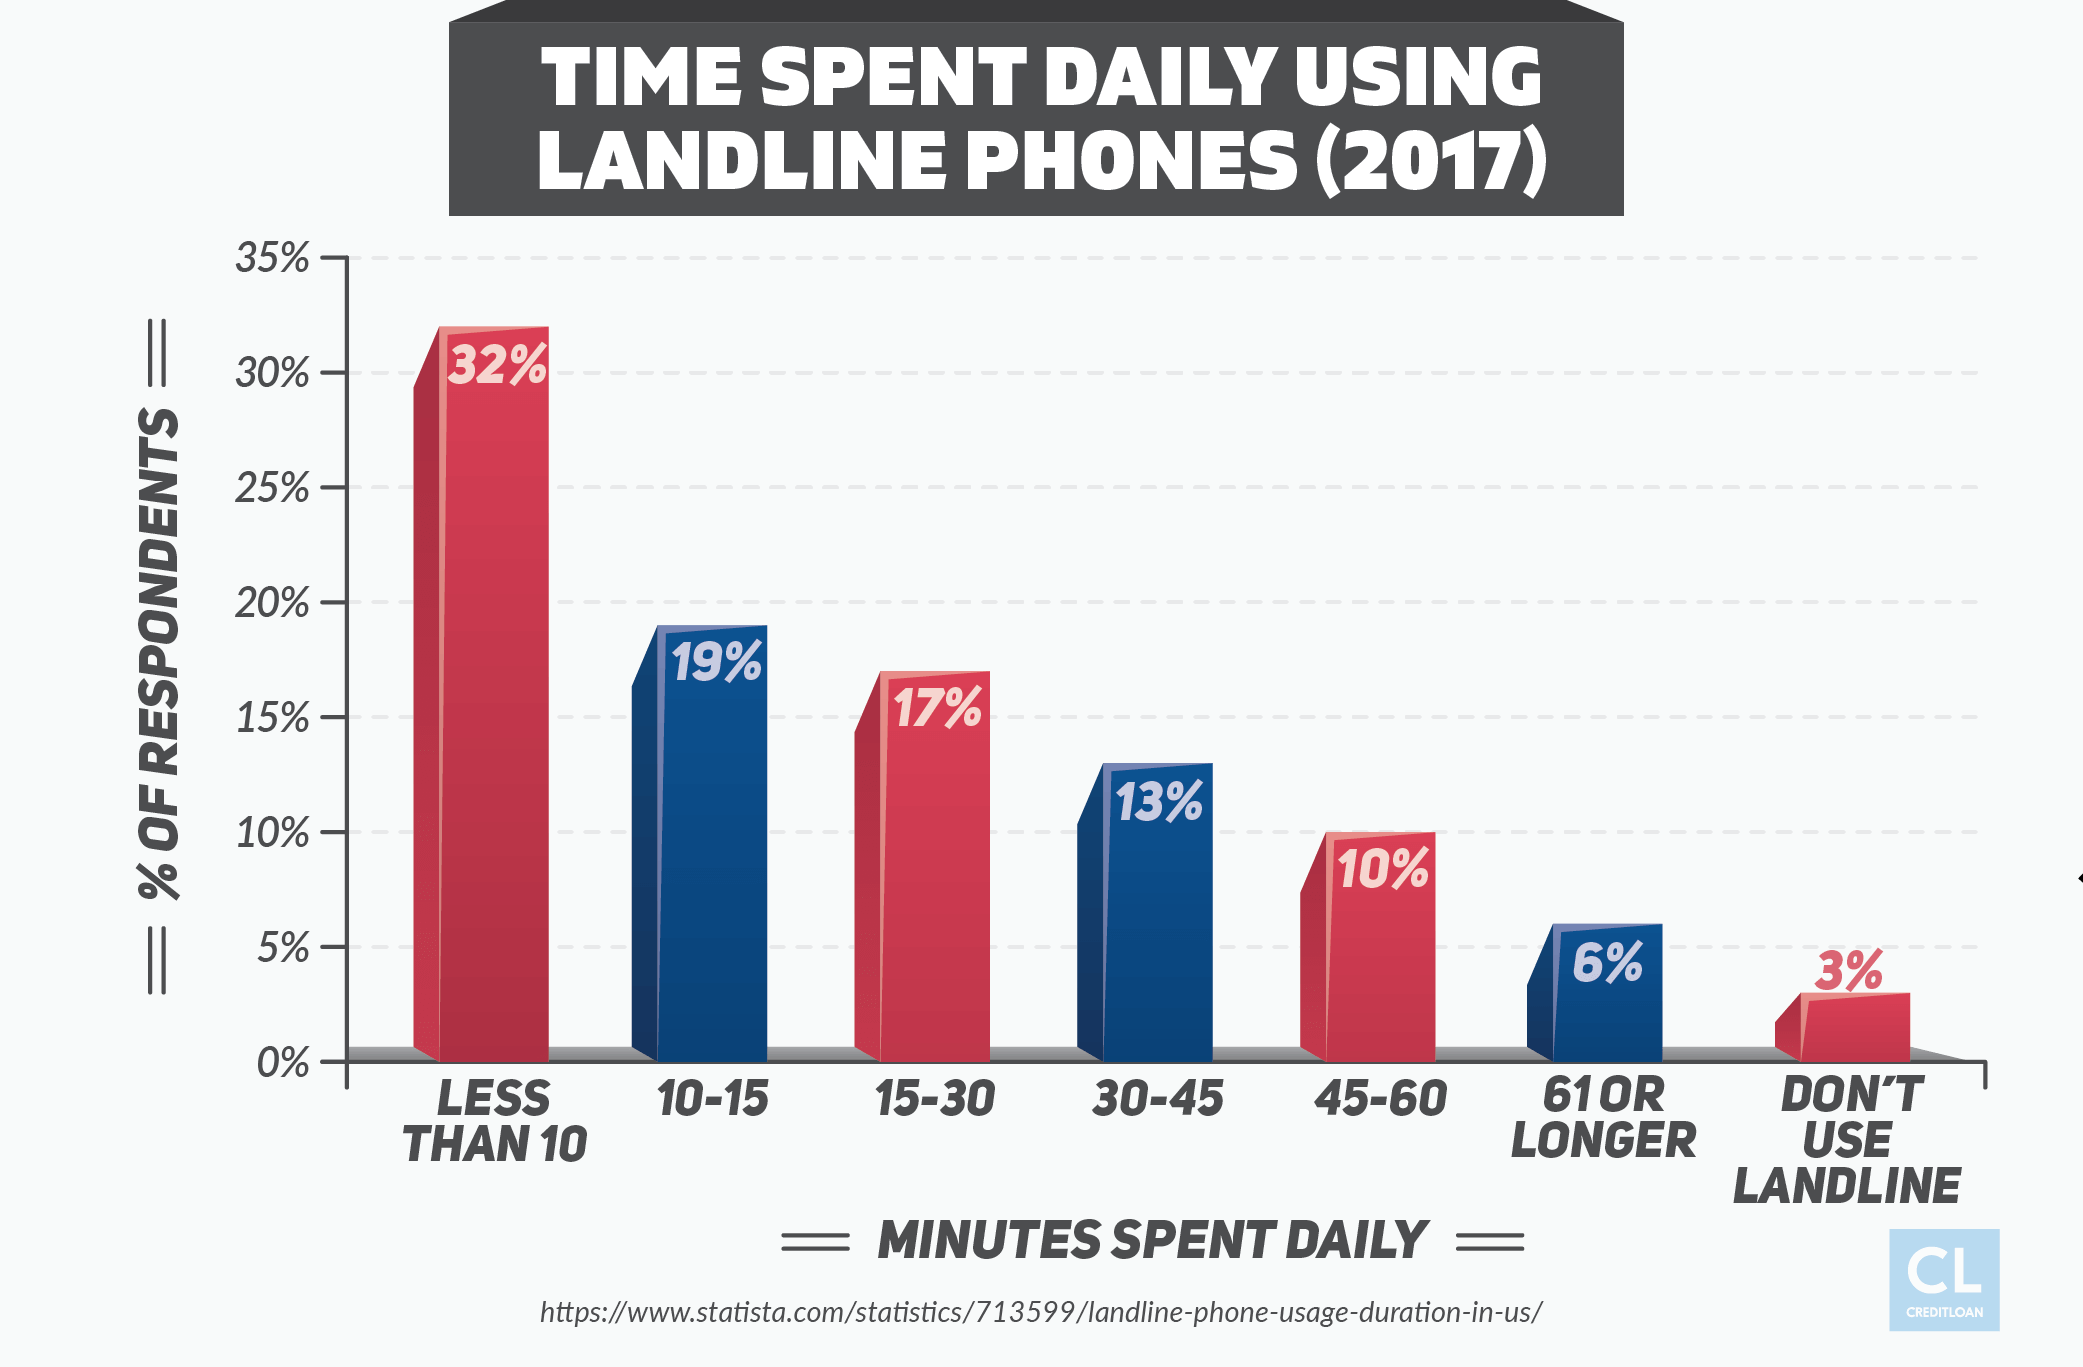 2017 Time Spent Daily Using Landline Phones